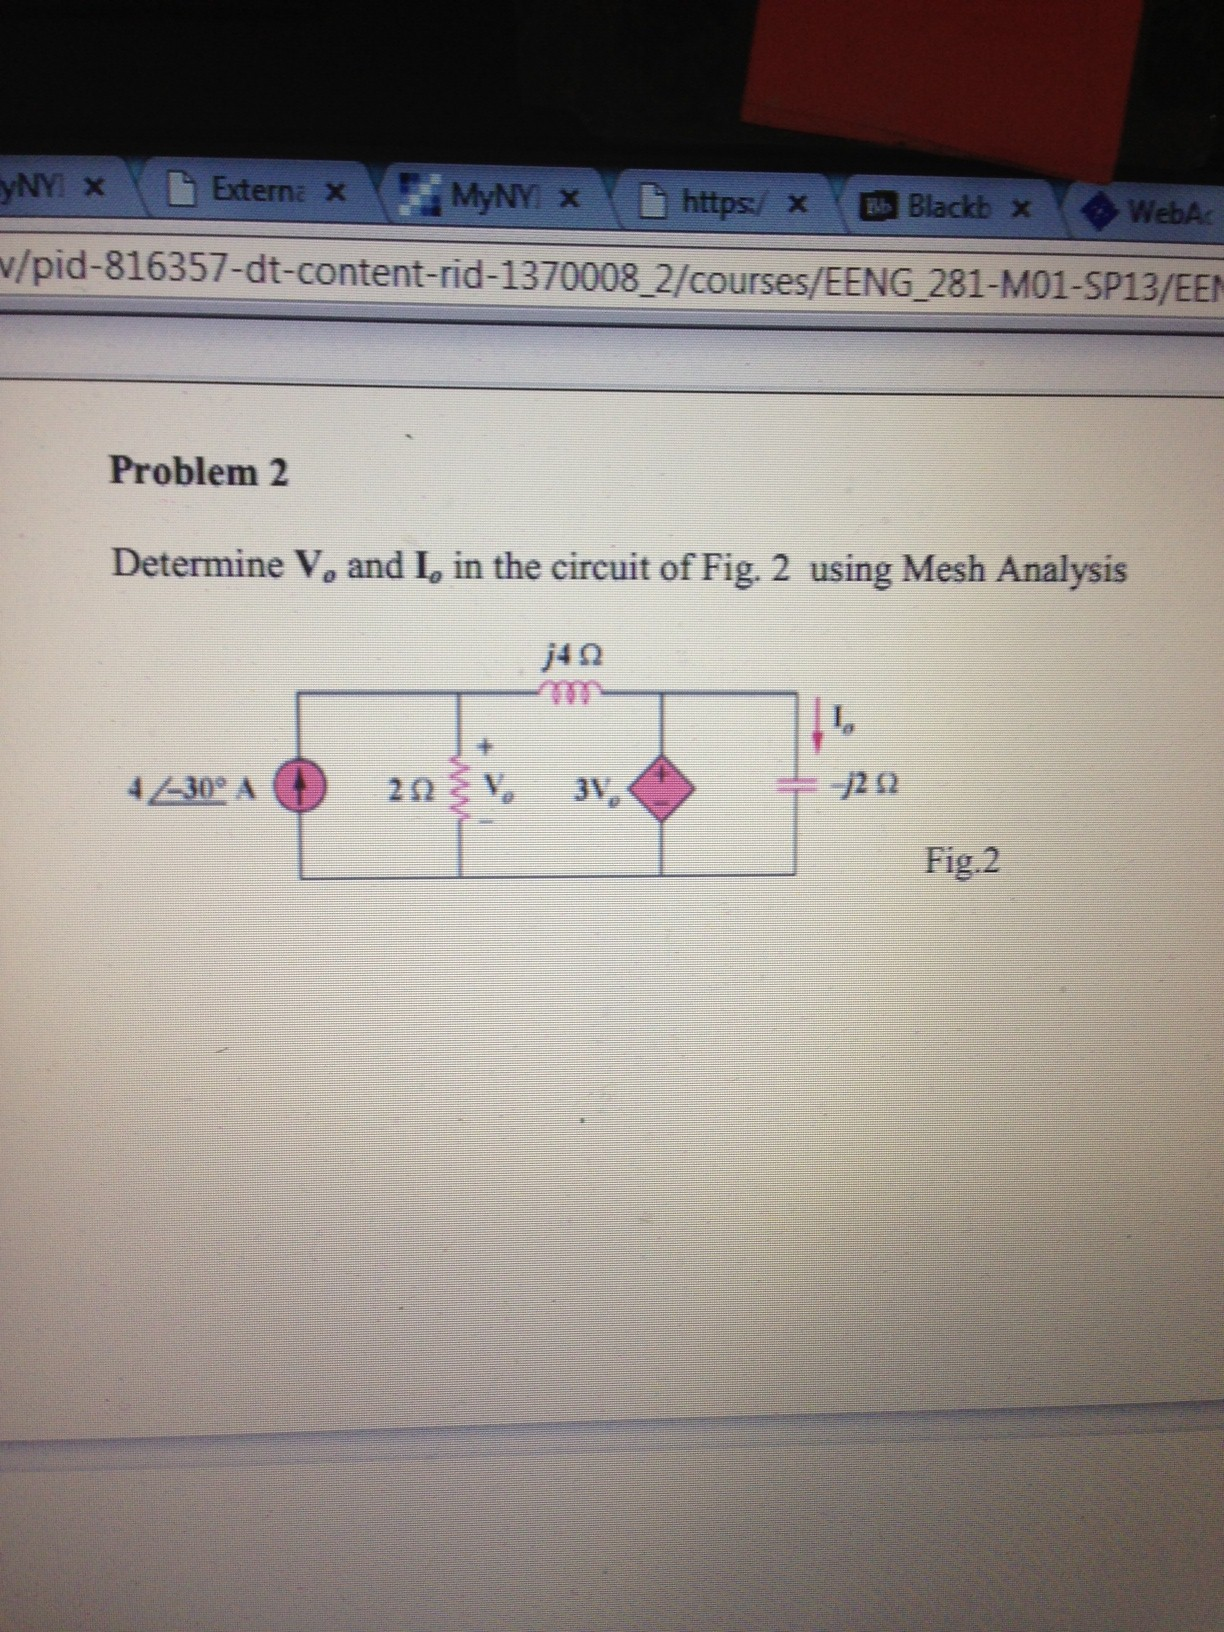 Determine V0 and I0 in the circuit of Fig. 2 using